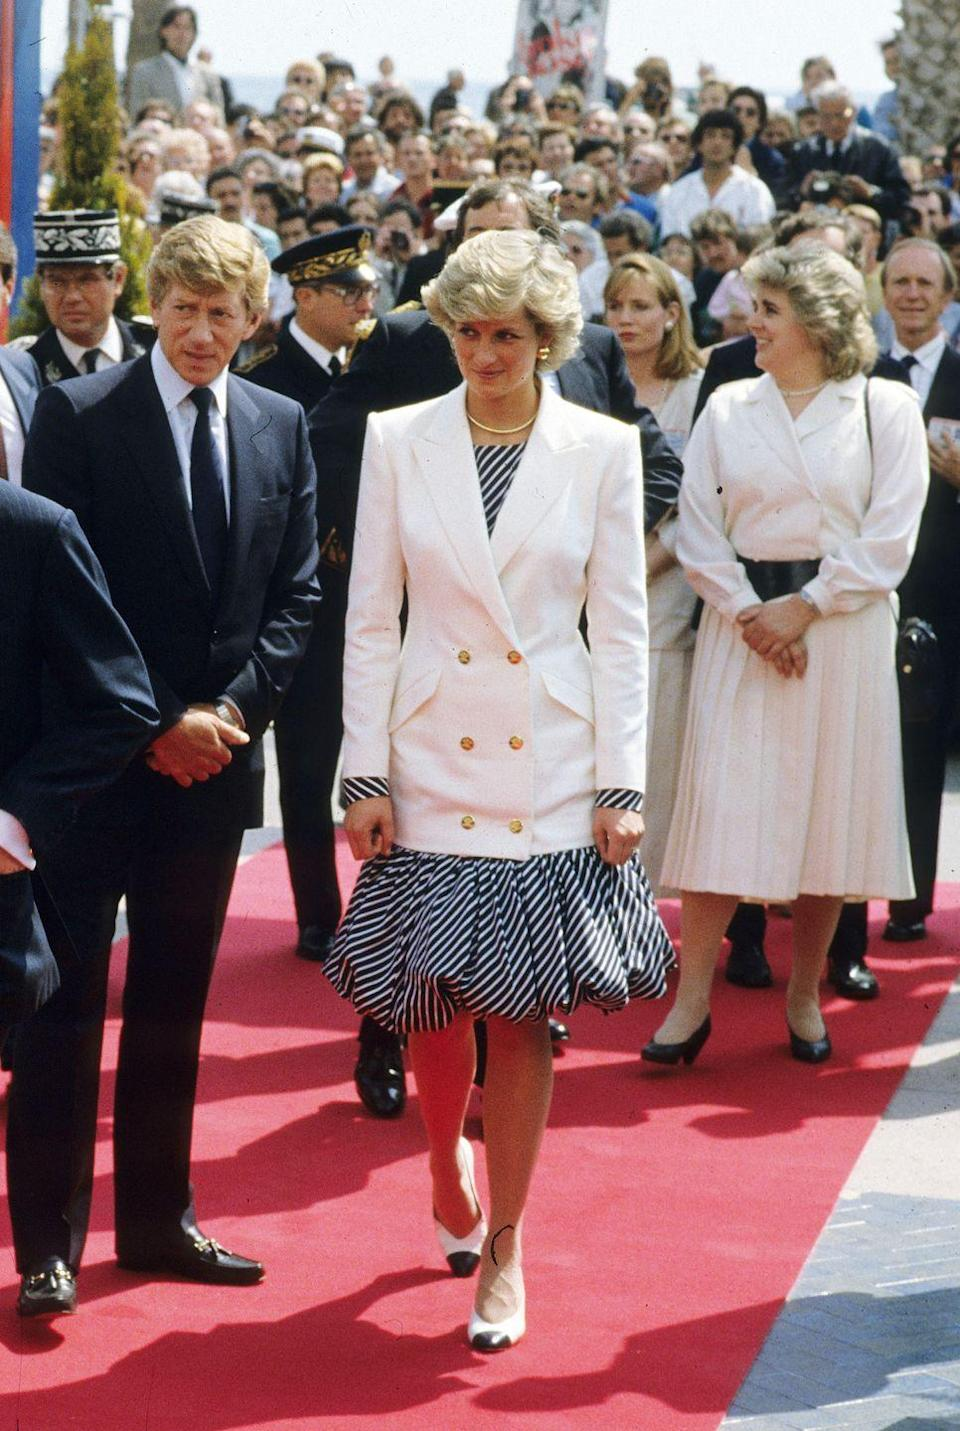 <p>Diana wore an oversized white blazer paired with a striped dress by Catherine Walker while walking the red carpet at the Cannes Film Festival on May 15, 1987.</p>